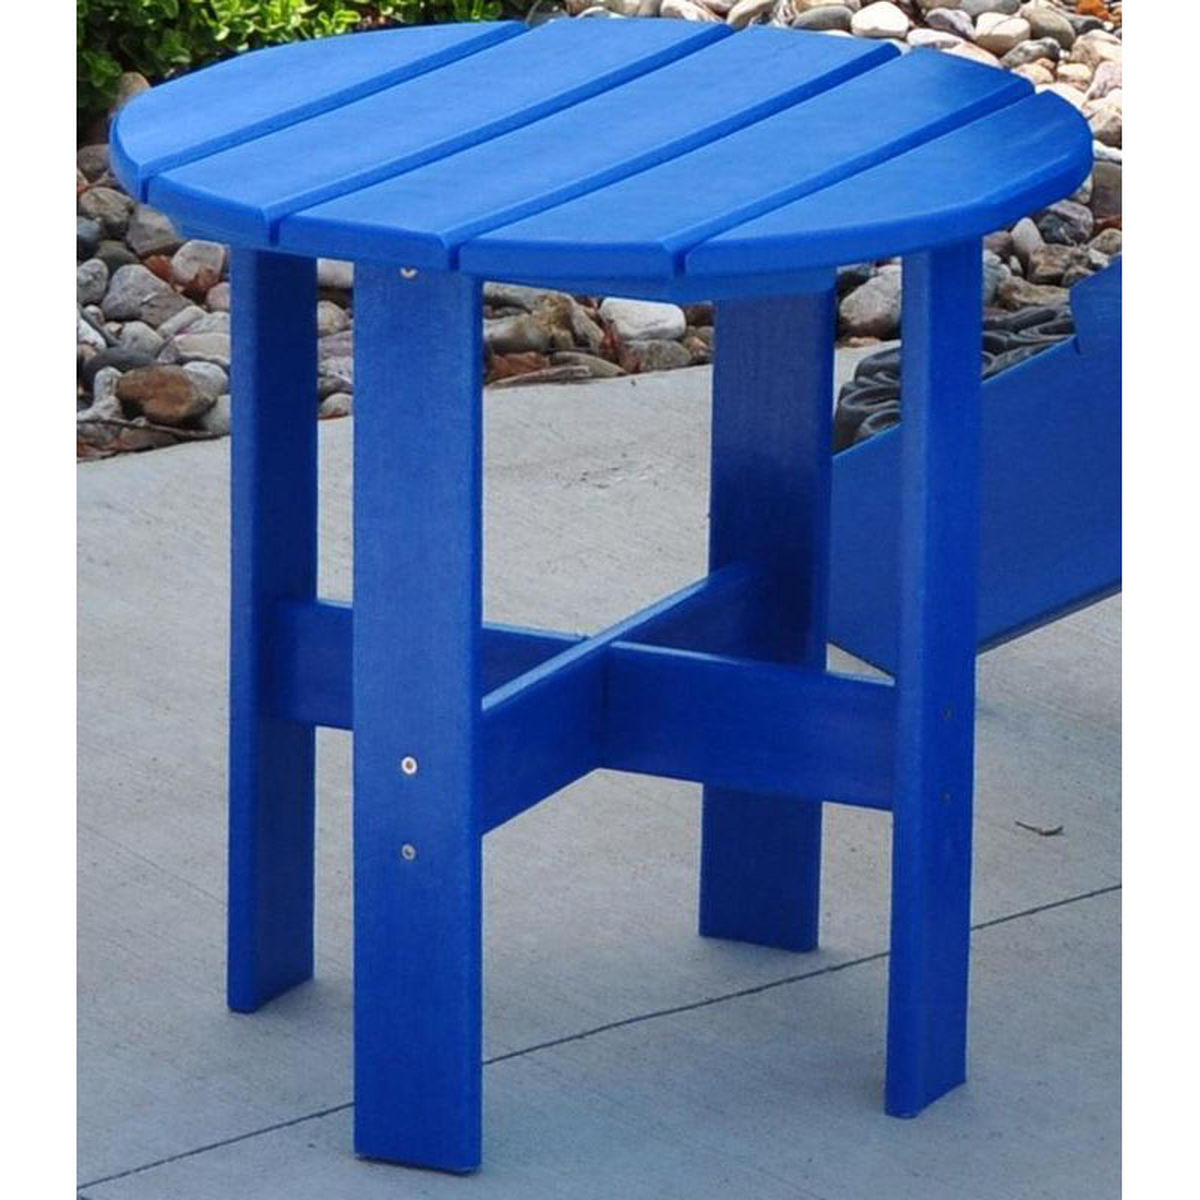 blue adirondack side table adtrastblu bizchair jayhawk plastics jay main outdoor accent our traditional recycled plastic now battery lamps light bulb changer pole small oak coffee